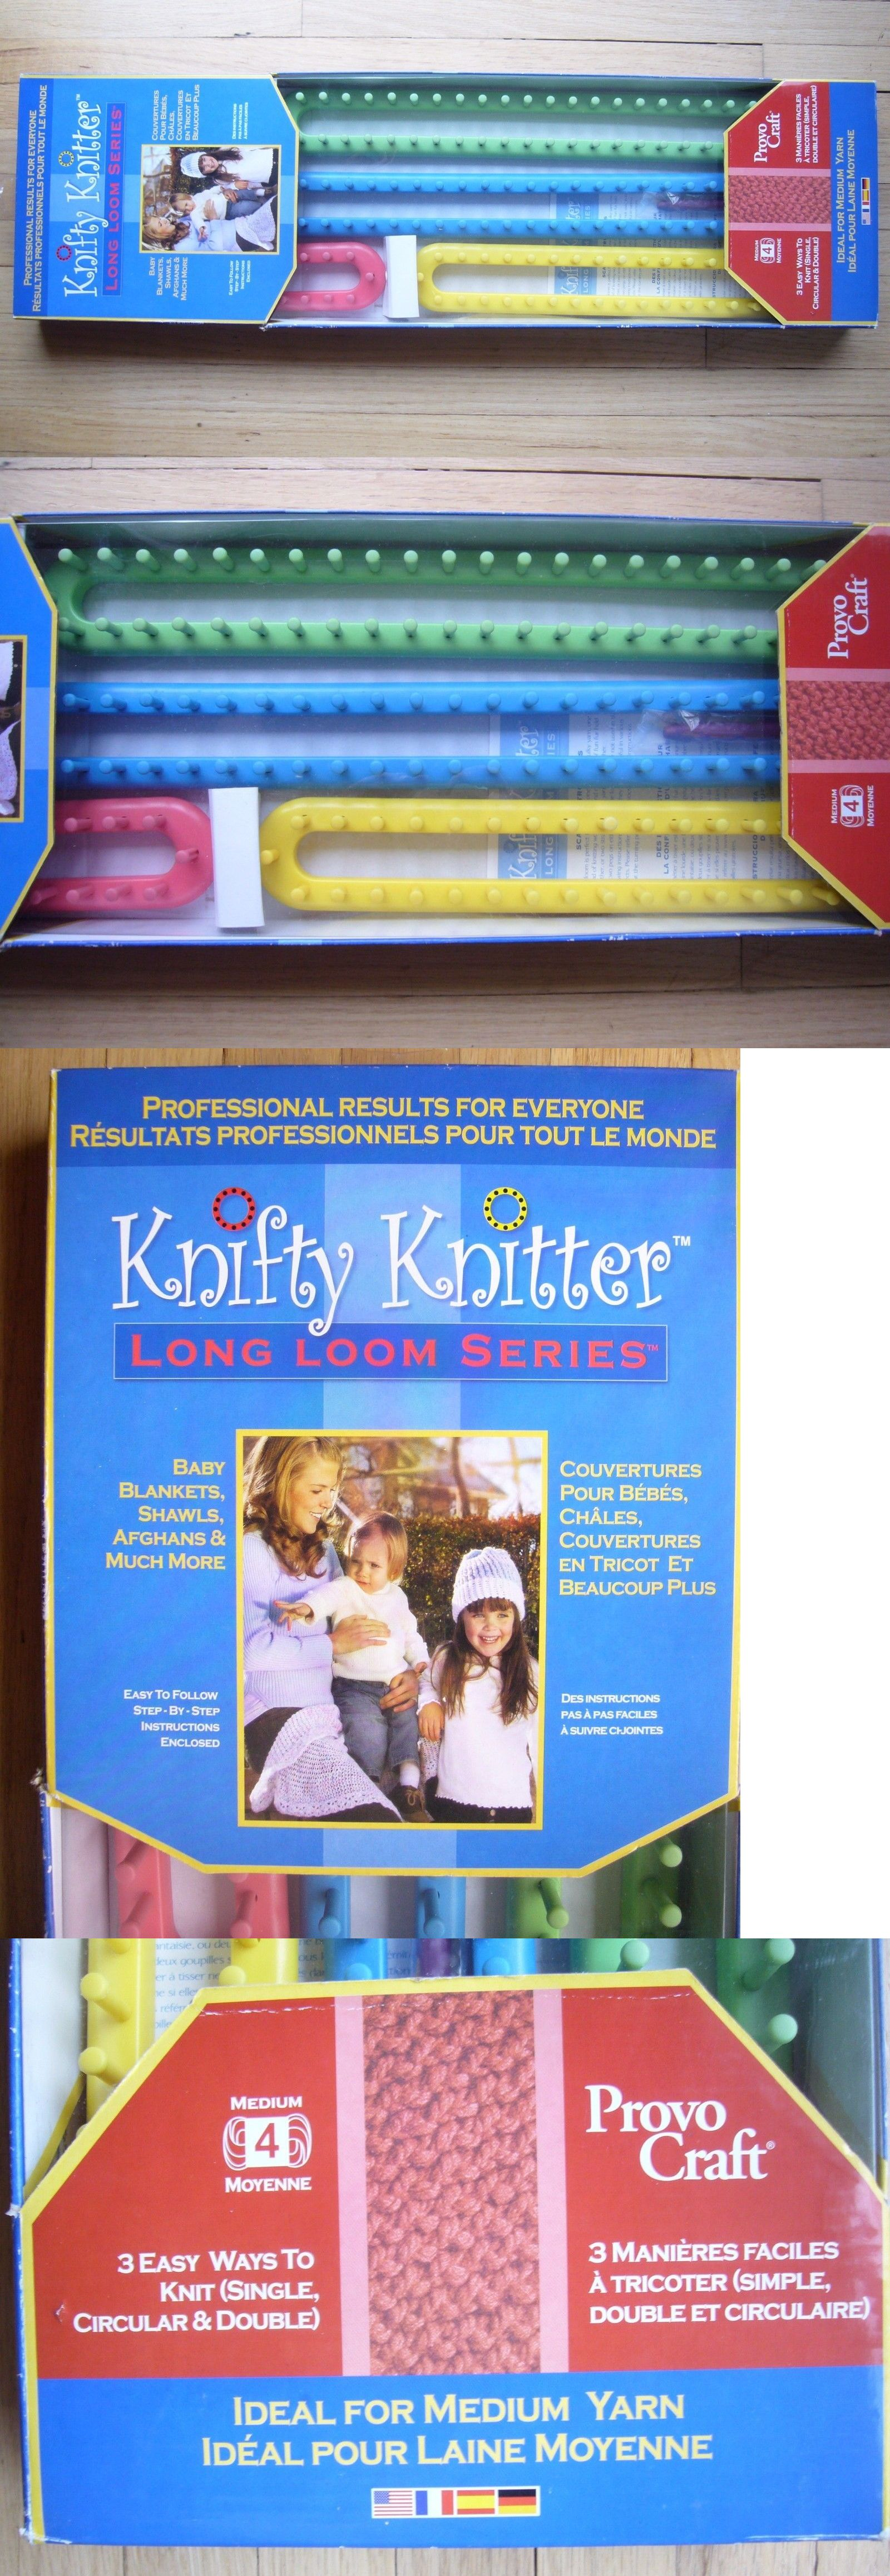 Knitting Boards And Looms 113343 New Ib Provo Craft Knifty Knitter